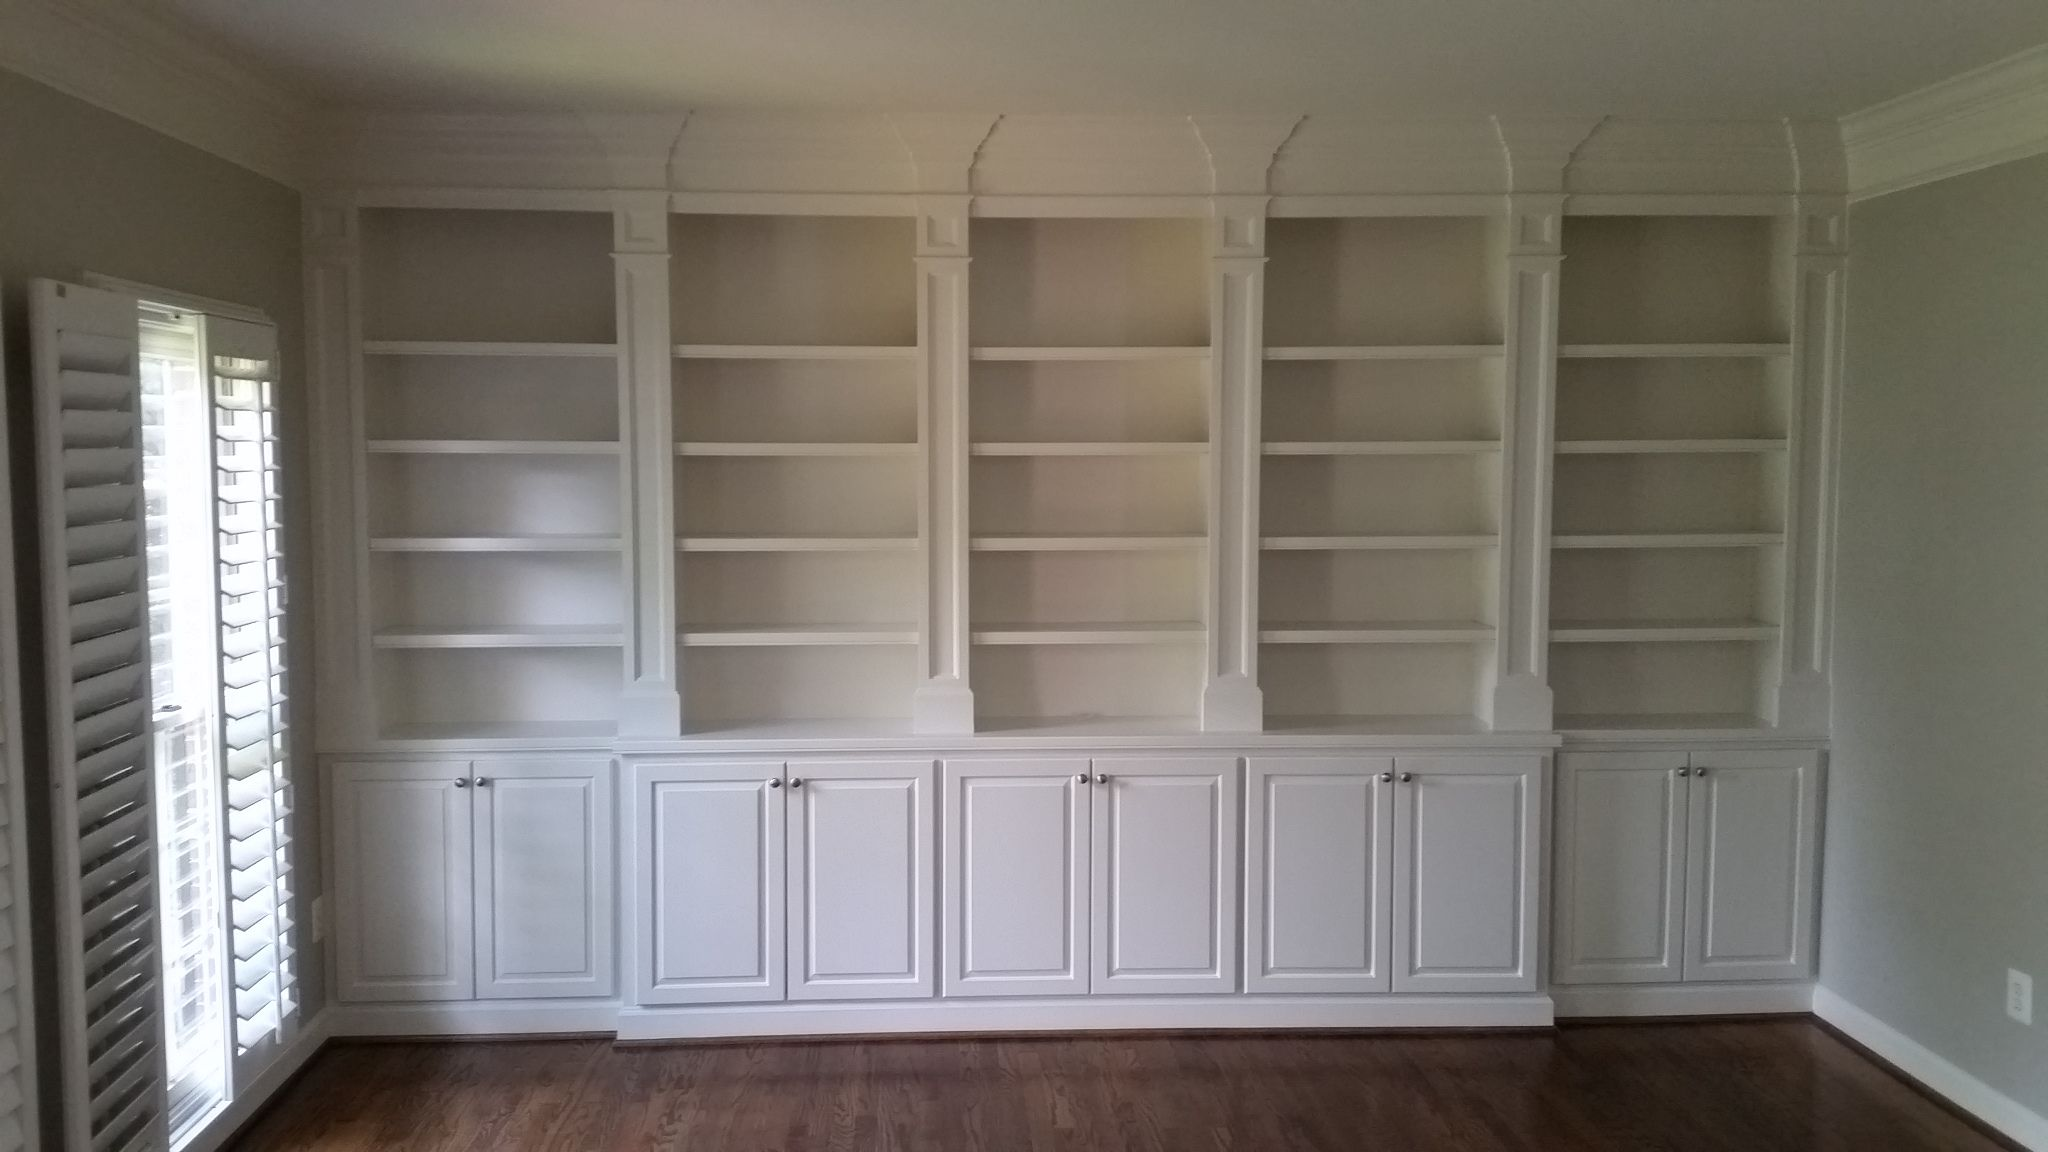 White Built In Cabinetry Featuring Recessed Pilaster Stiles, Adjustable Shelving, And